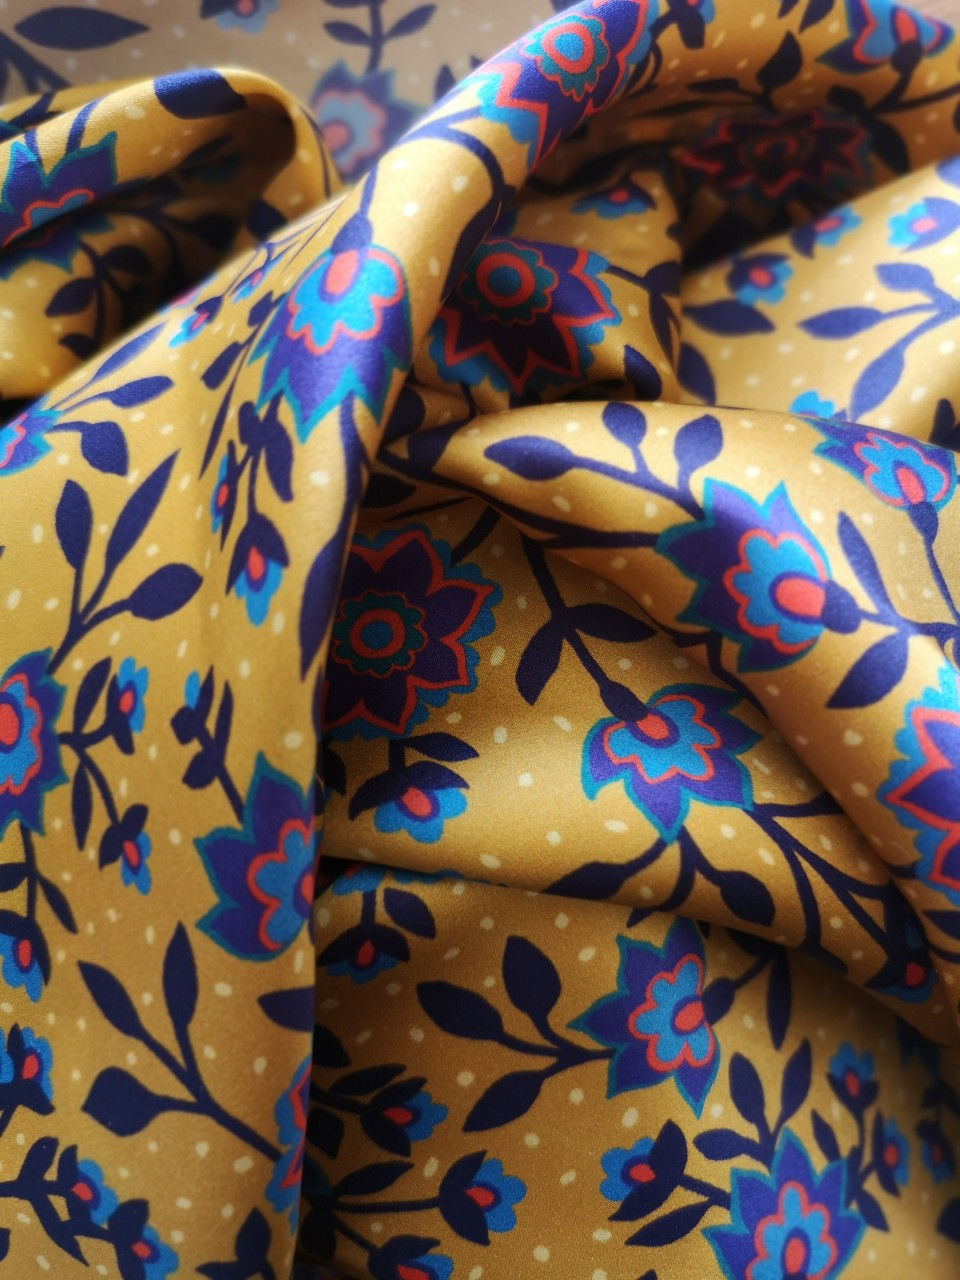 Capucine - carré de soie- ibebysabine - 100% soie naturelle - imprimé Liberty of London - Fil certifié OEKO-TEX -  Fond ocre, motifs bleus, violets et rouge - Made ine France - Mode éco-responsable -